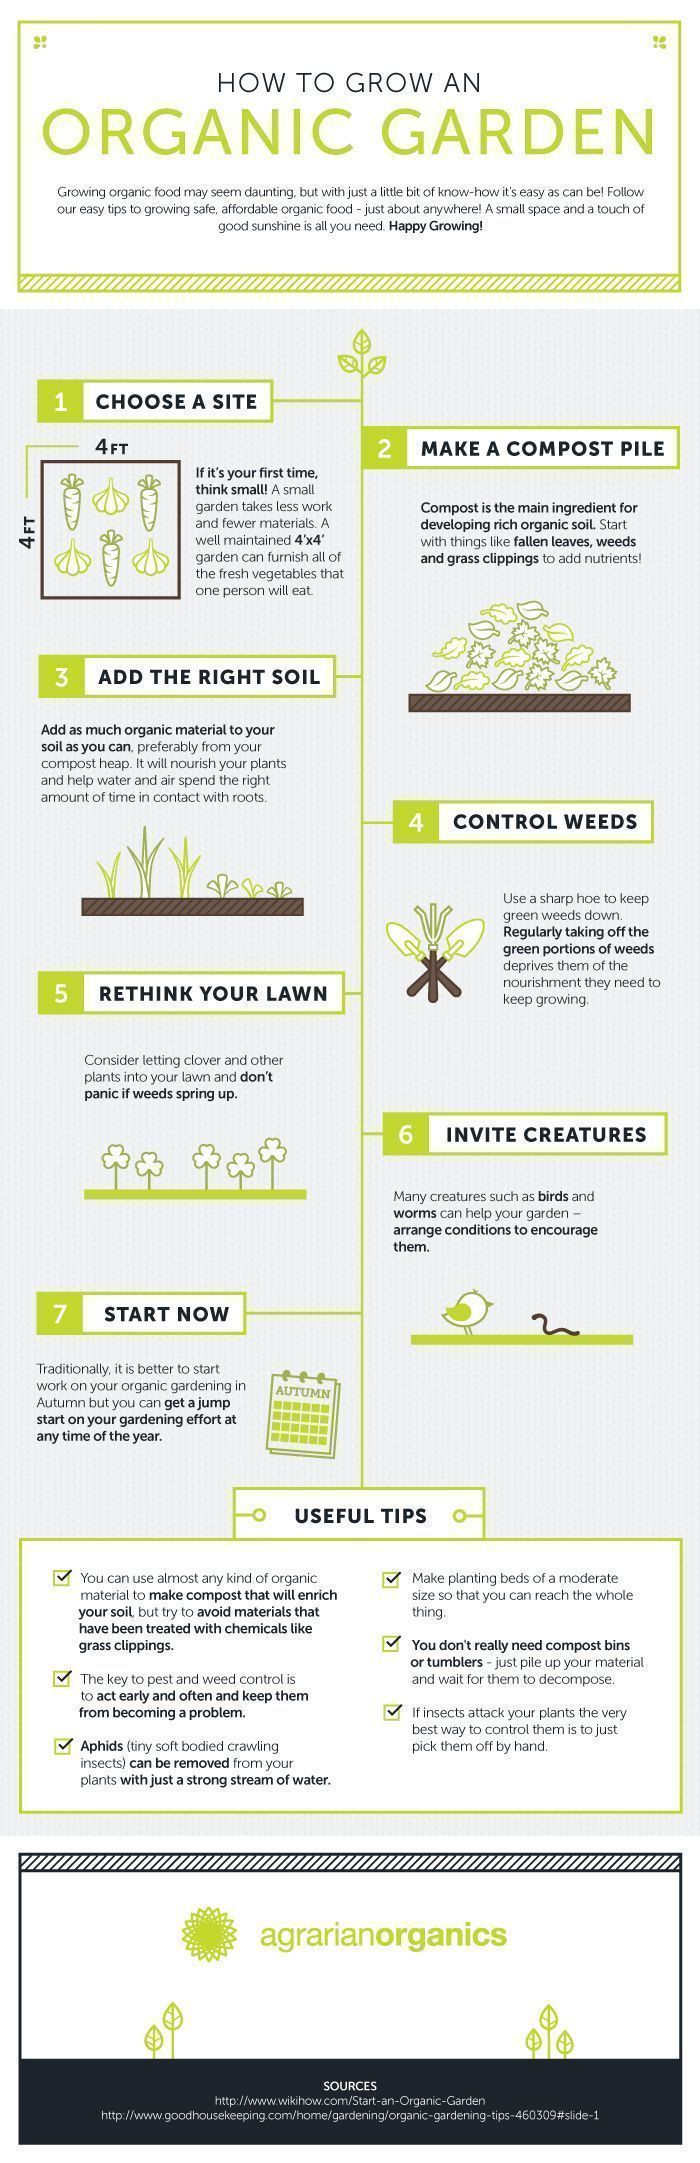 Organic Gardening for Beginners 7 Quick Steps to Get You